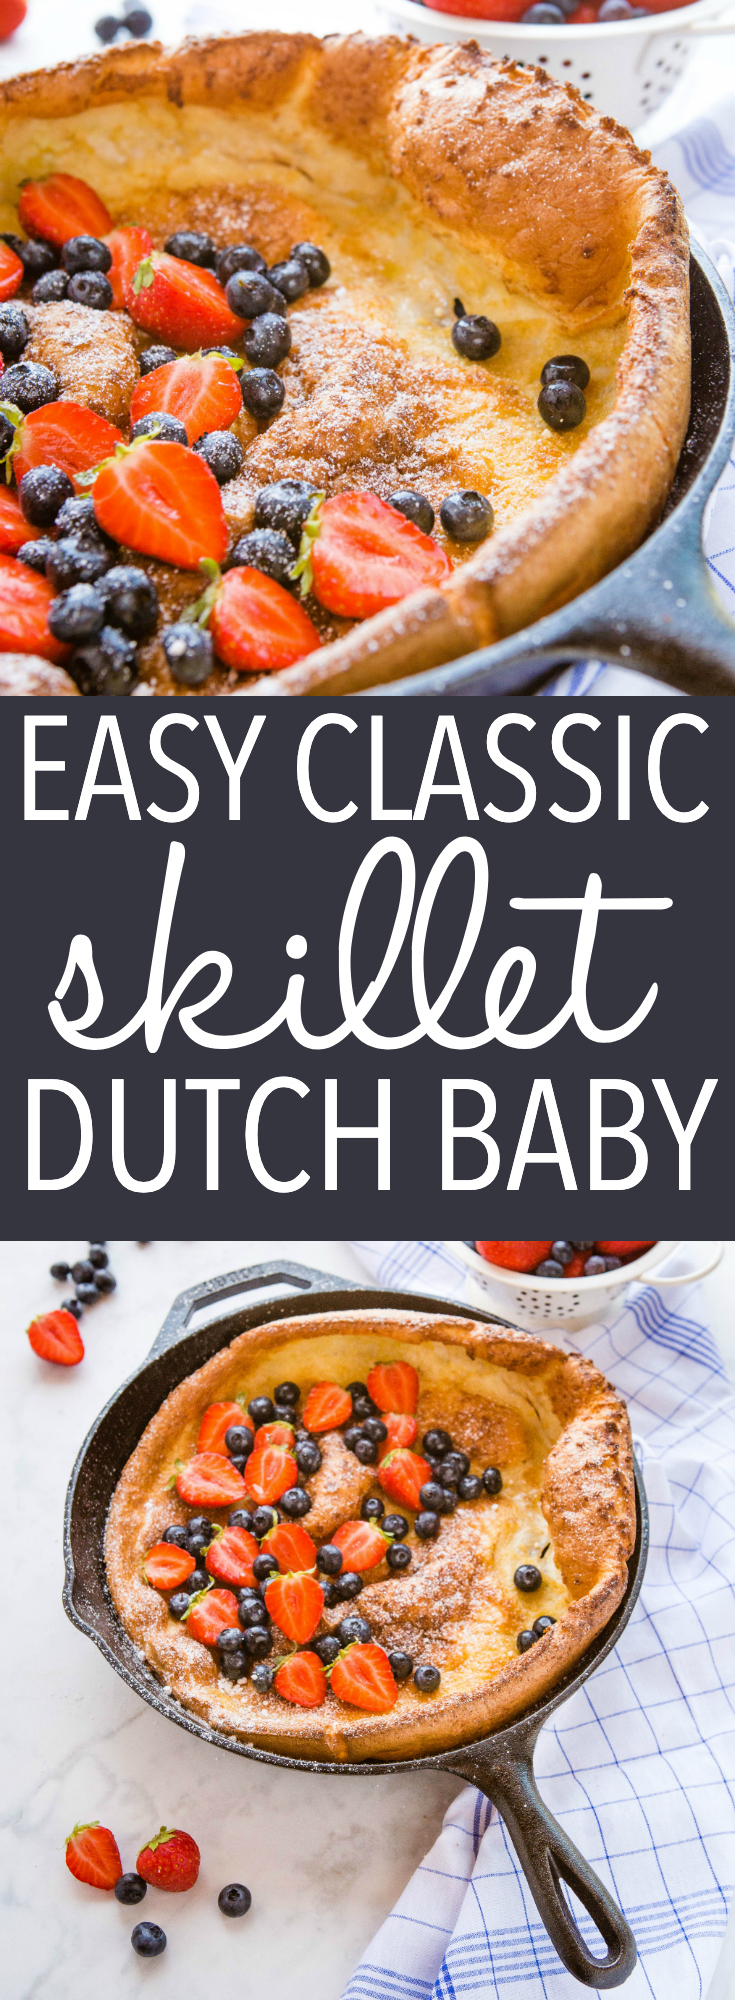 This Easy Skillet Dutch Baby is the perfect simple breakfast - a no-fuss pancake dough poured into a hot skillet and baked to fluffy perfection! Serve with fresh berries and a dusting of powdered sugar! Recipe from thebusybaker.ca! #dutchbaby #germanpancake #breakfast #entertaining #holidays #brunch #holidayrecipe #christmas via @busybakerblog